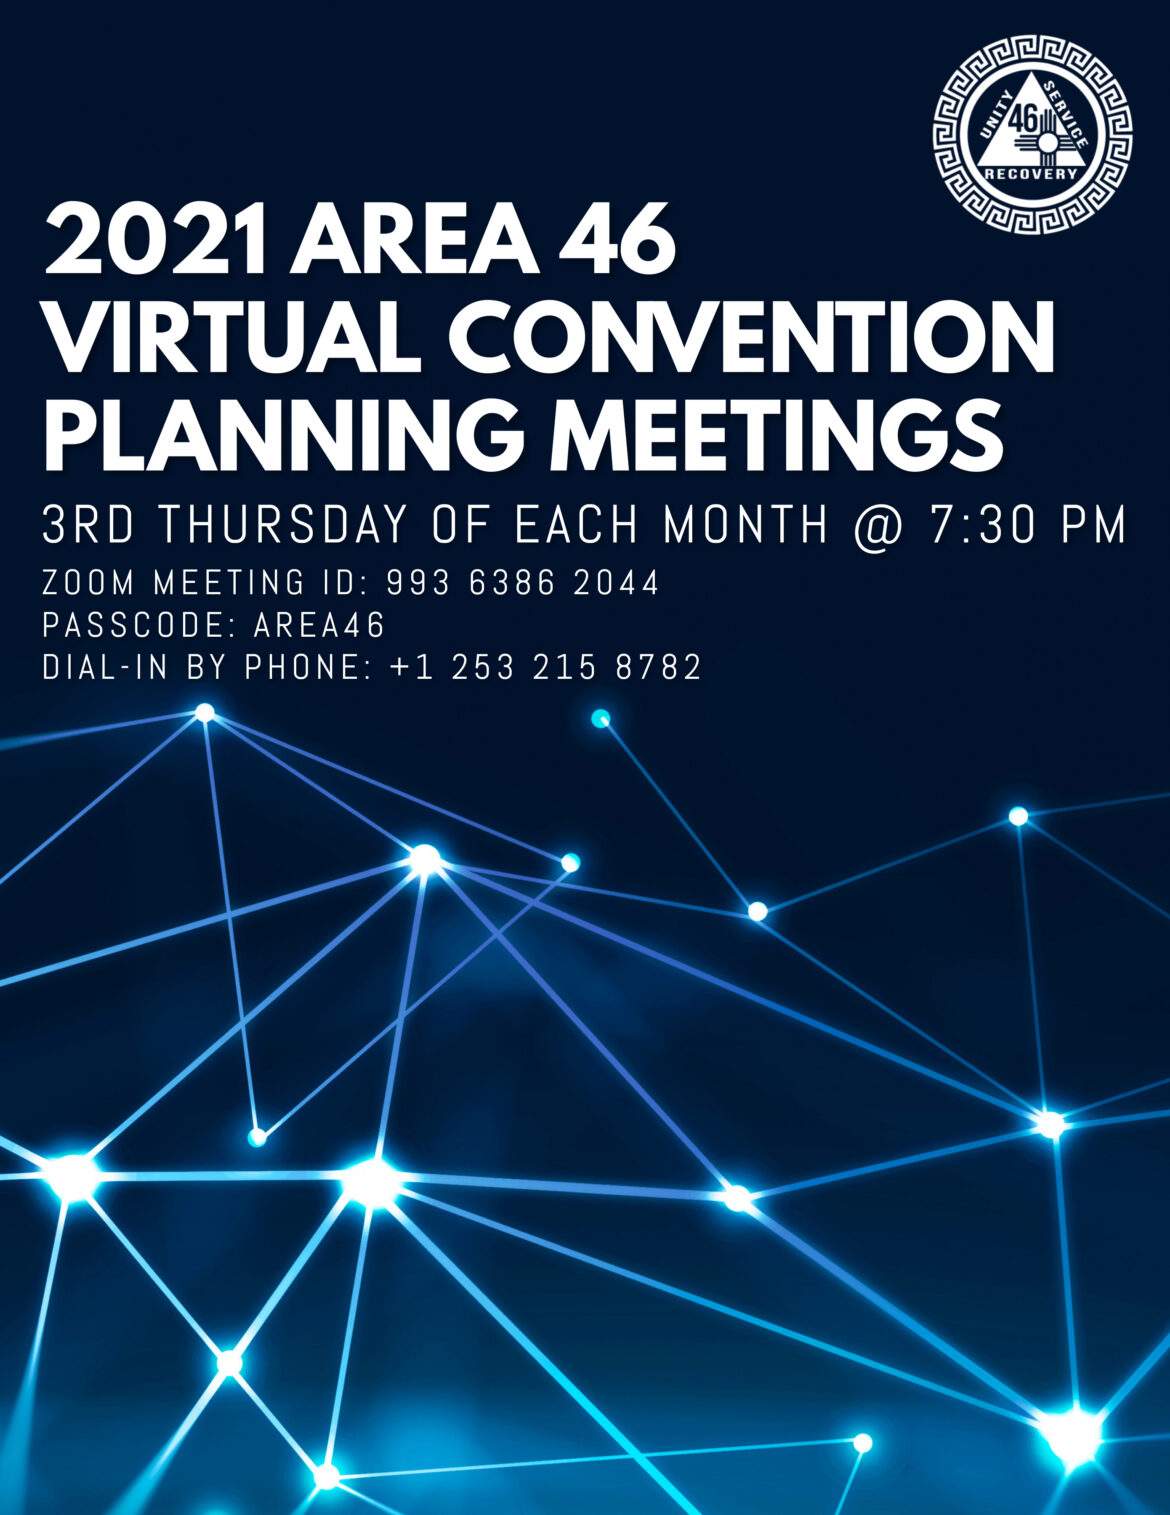 Planning Meetings for the 2021 Area 46 Convention